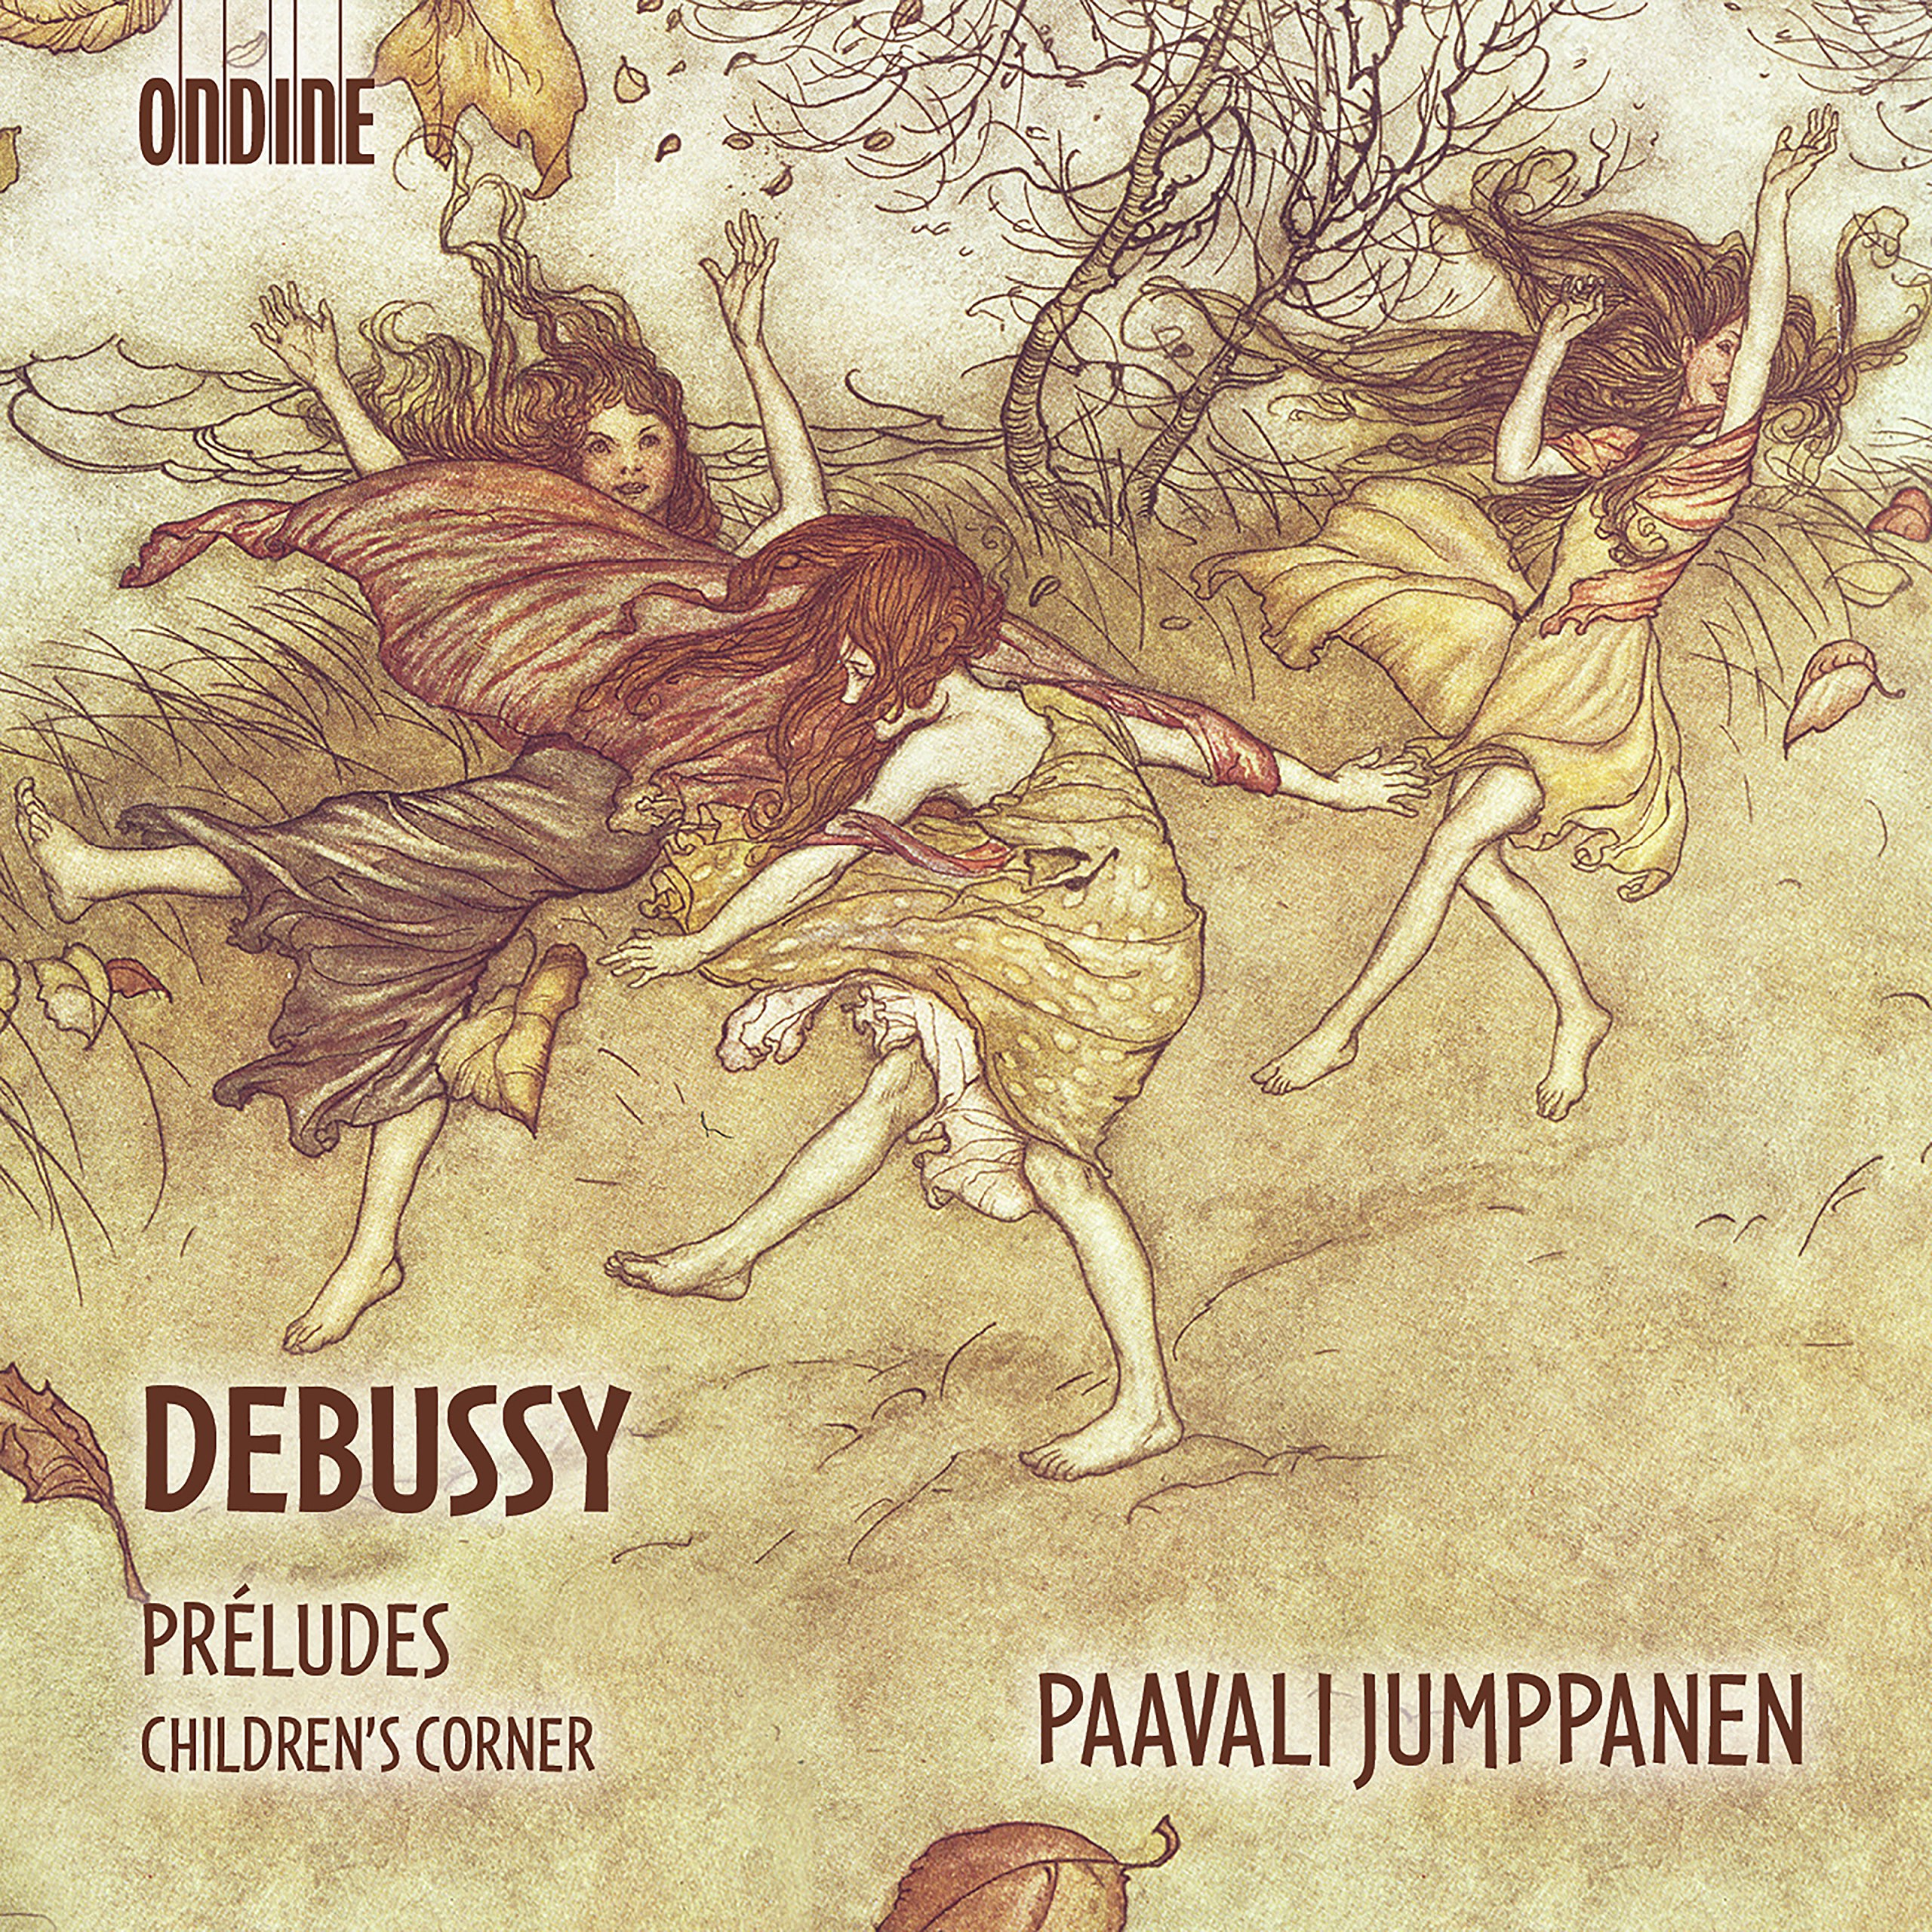 Debussy - Oeuvres pour piano - Page 9 A1BsD2u+LKL